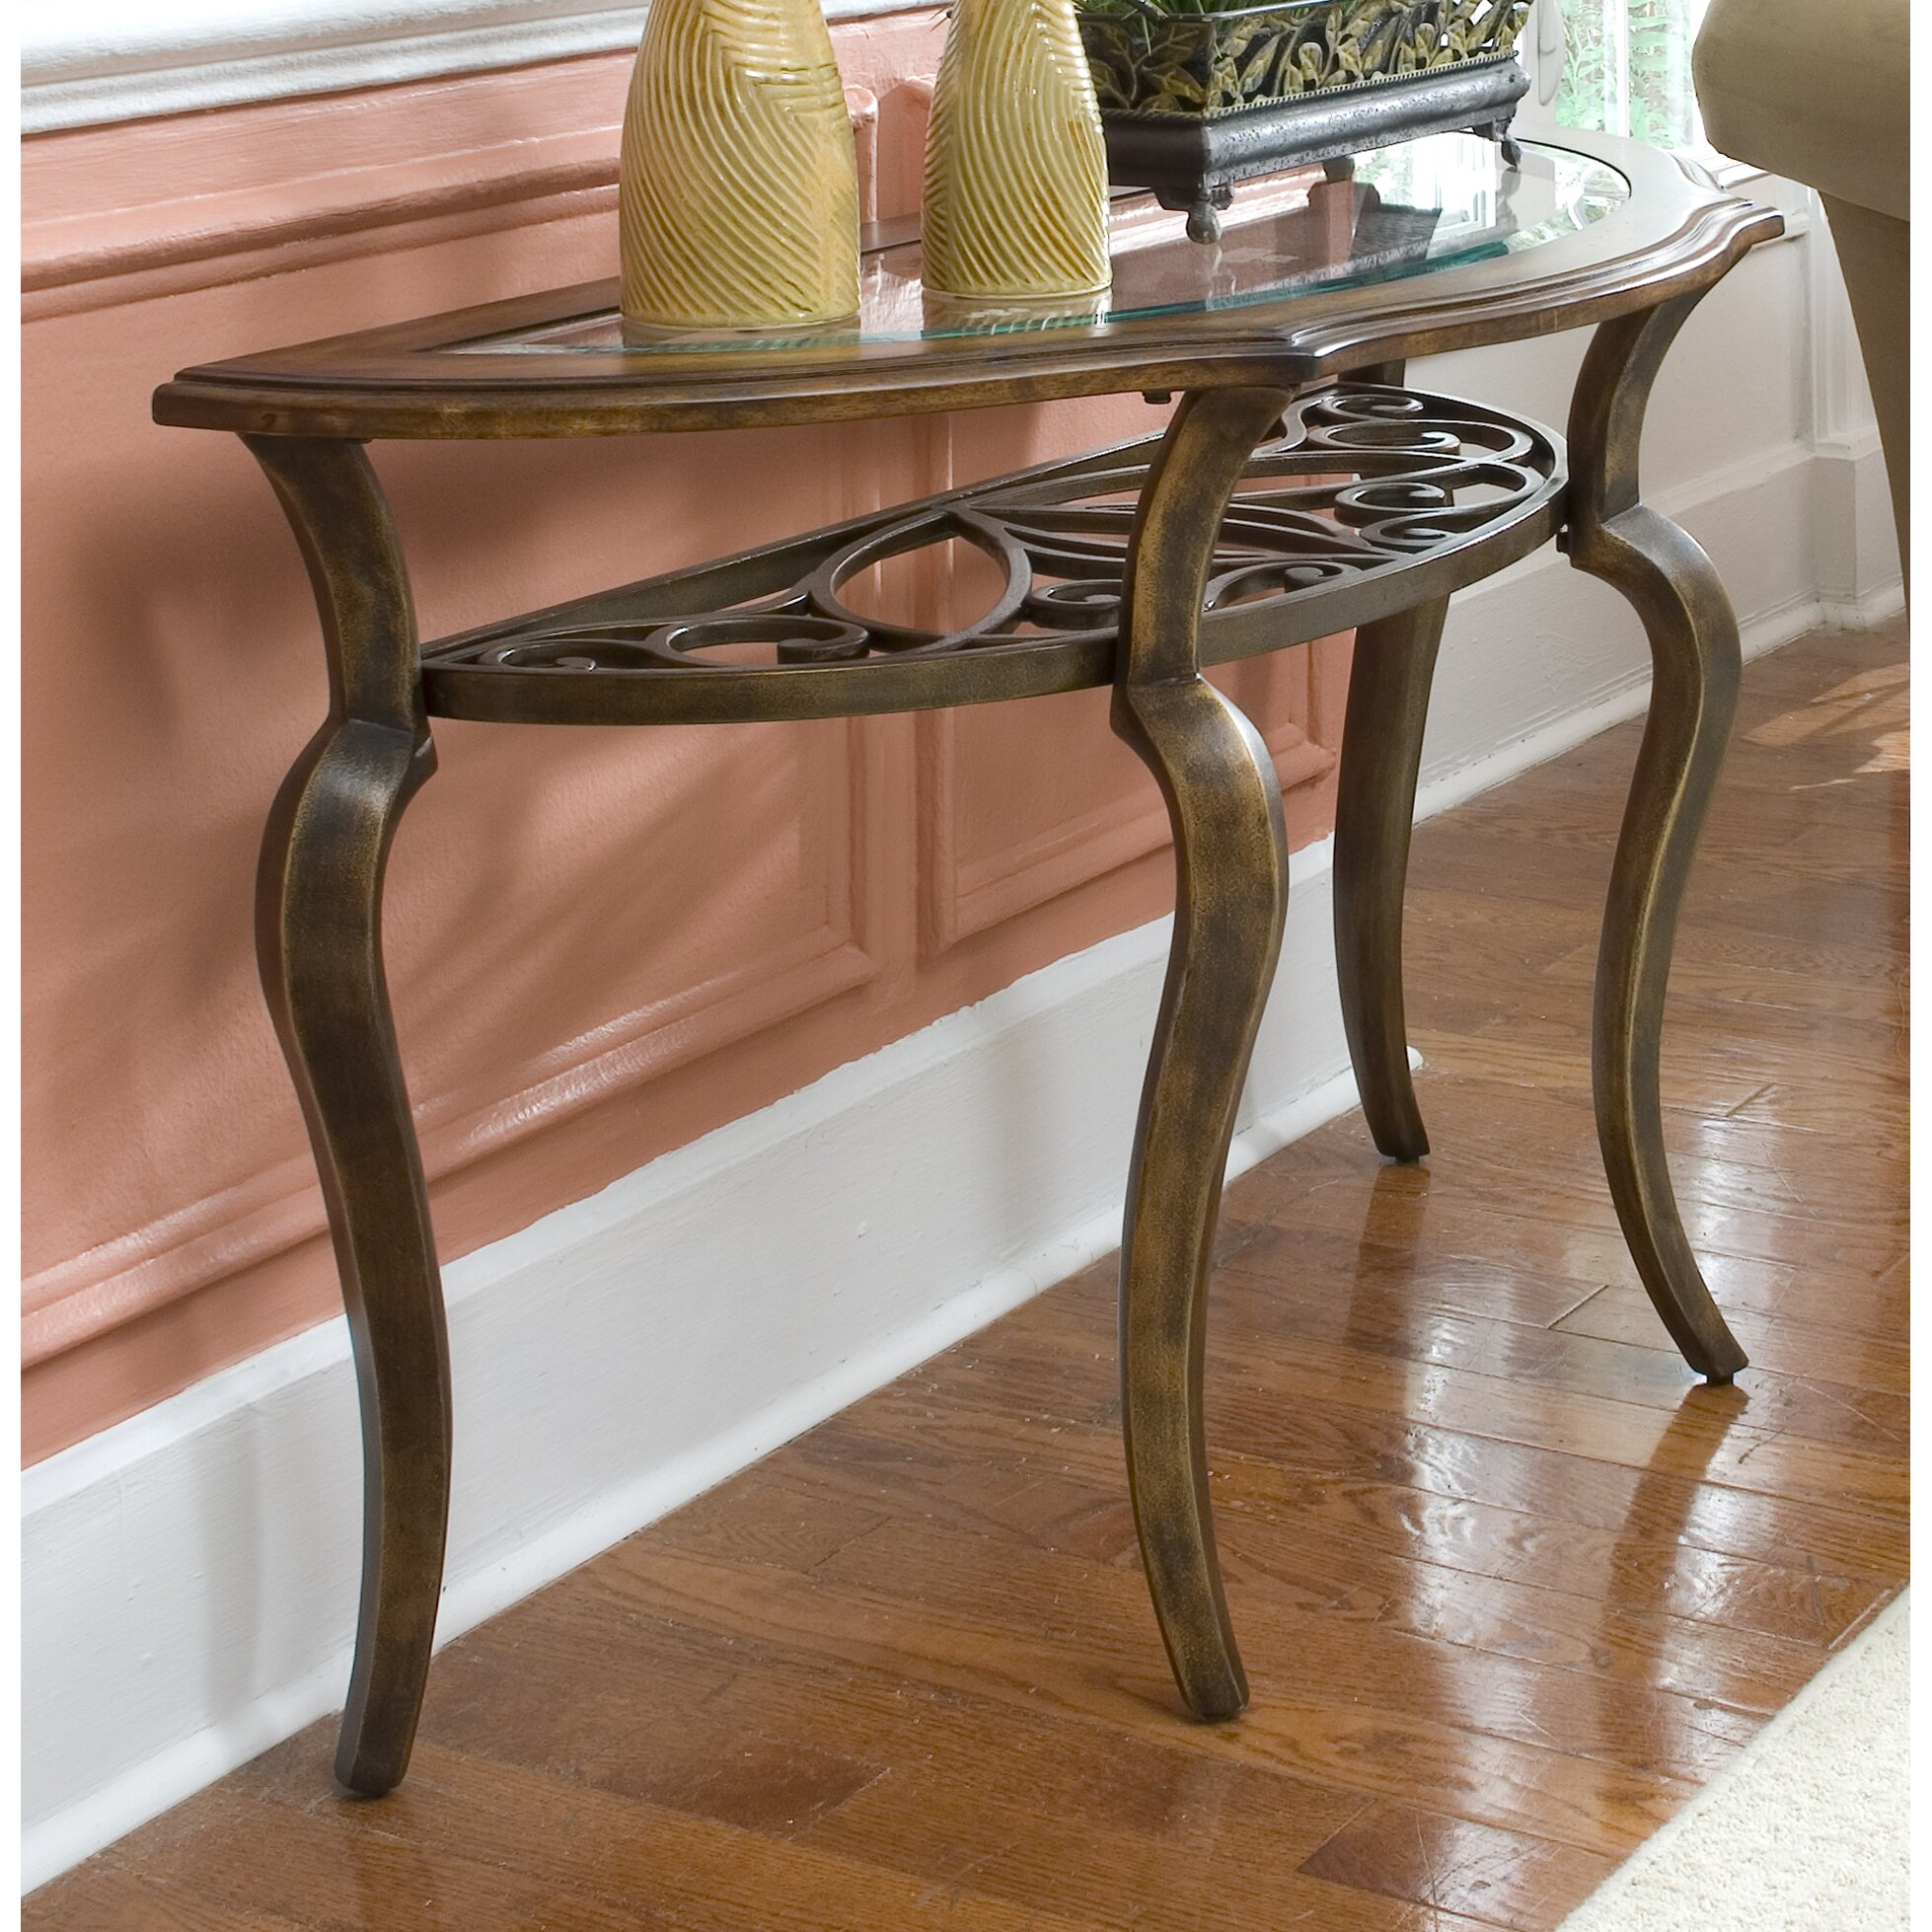 Riverside furniture serena coffee table set reviews for Table 6 in as 3725